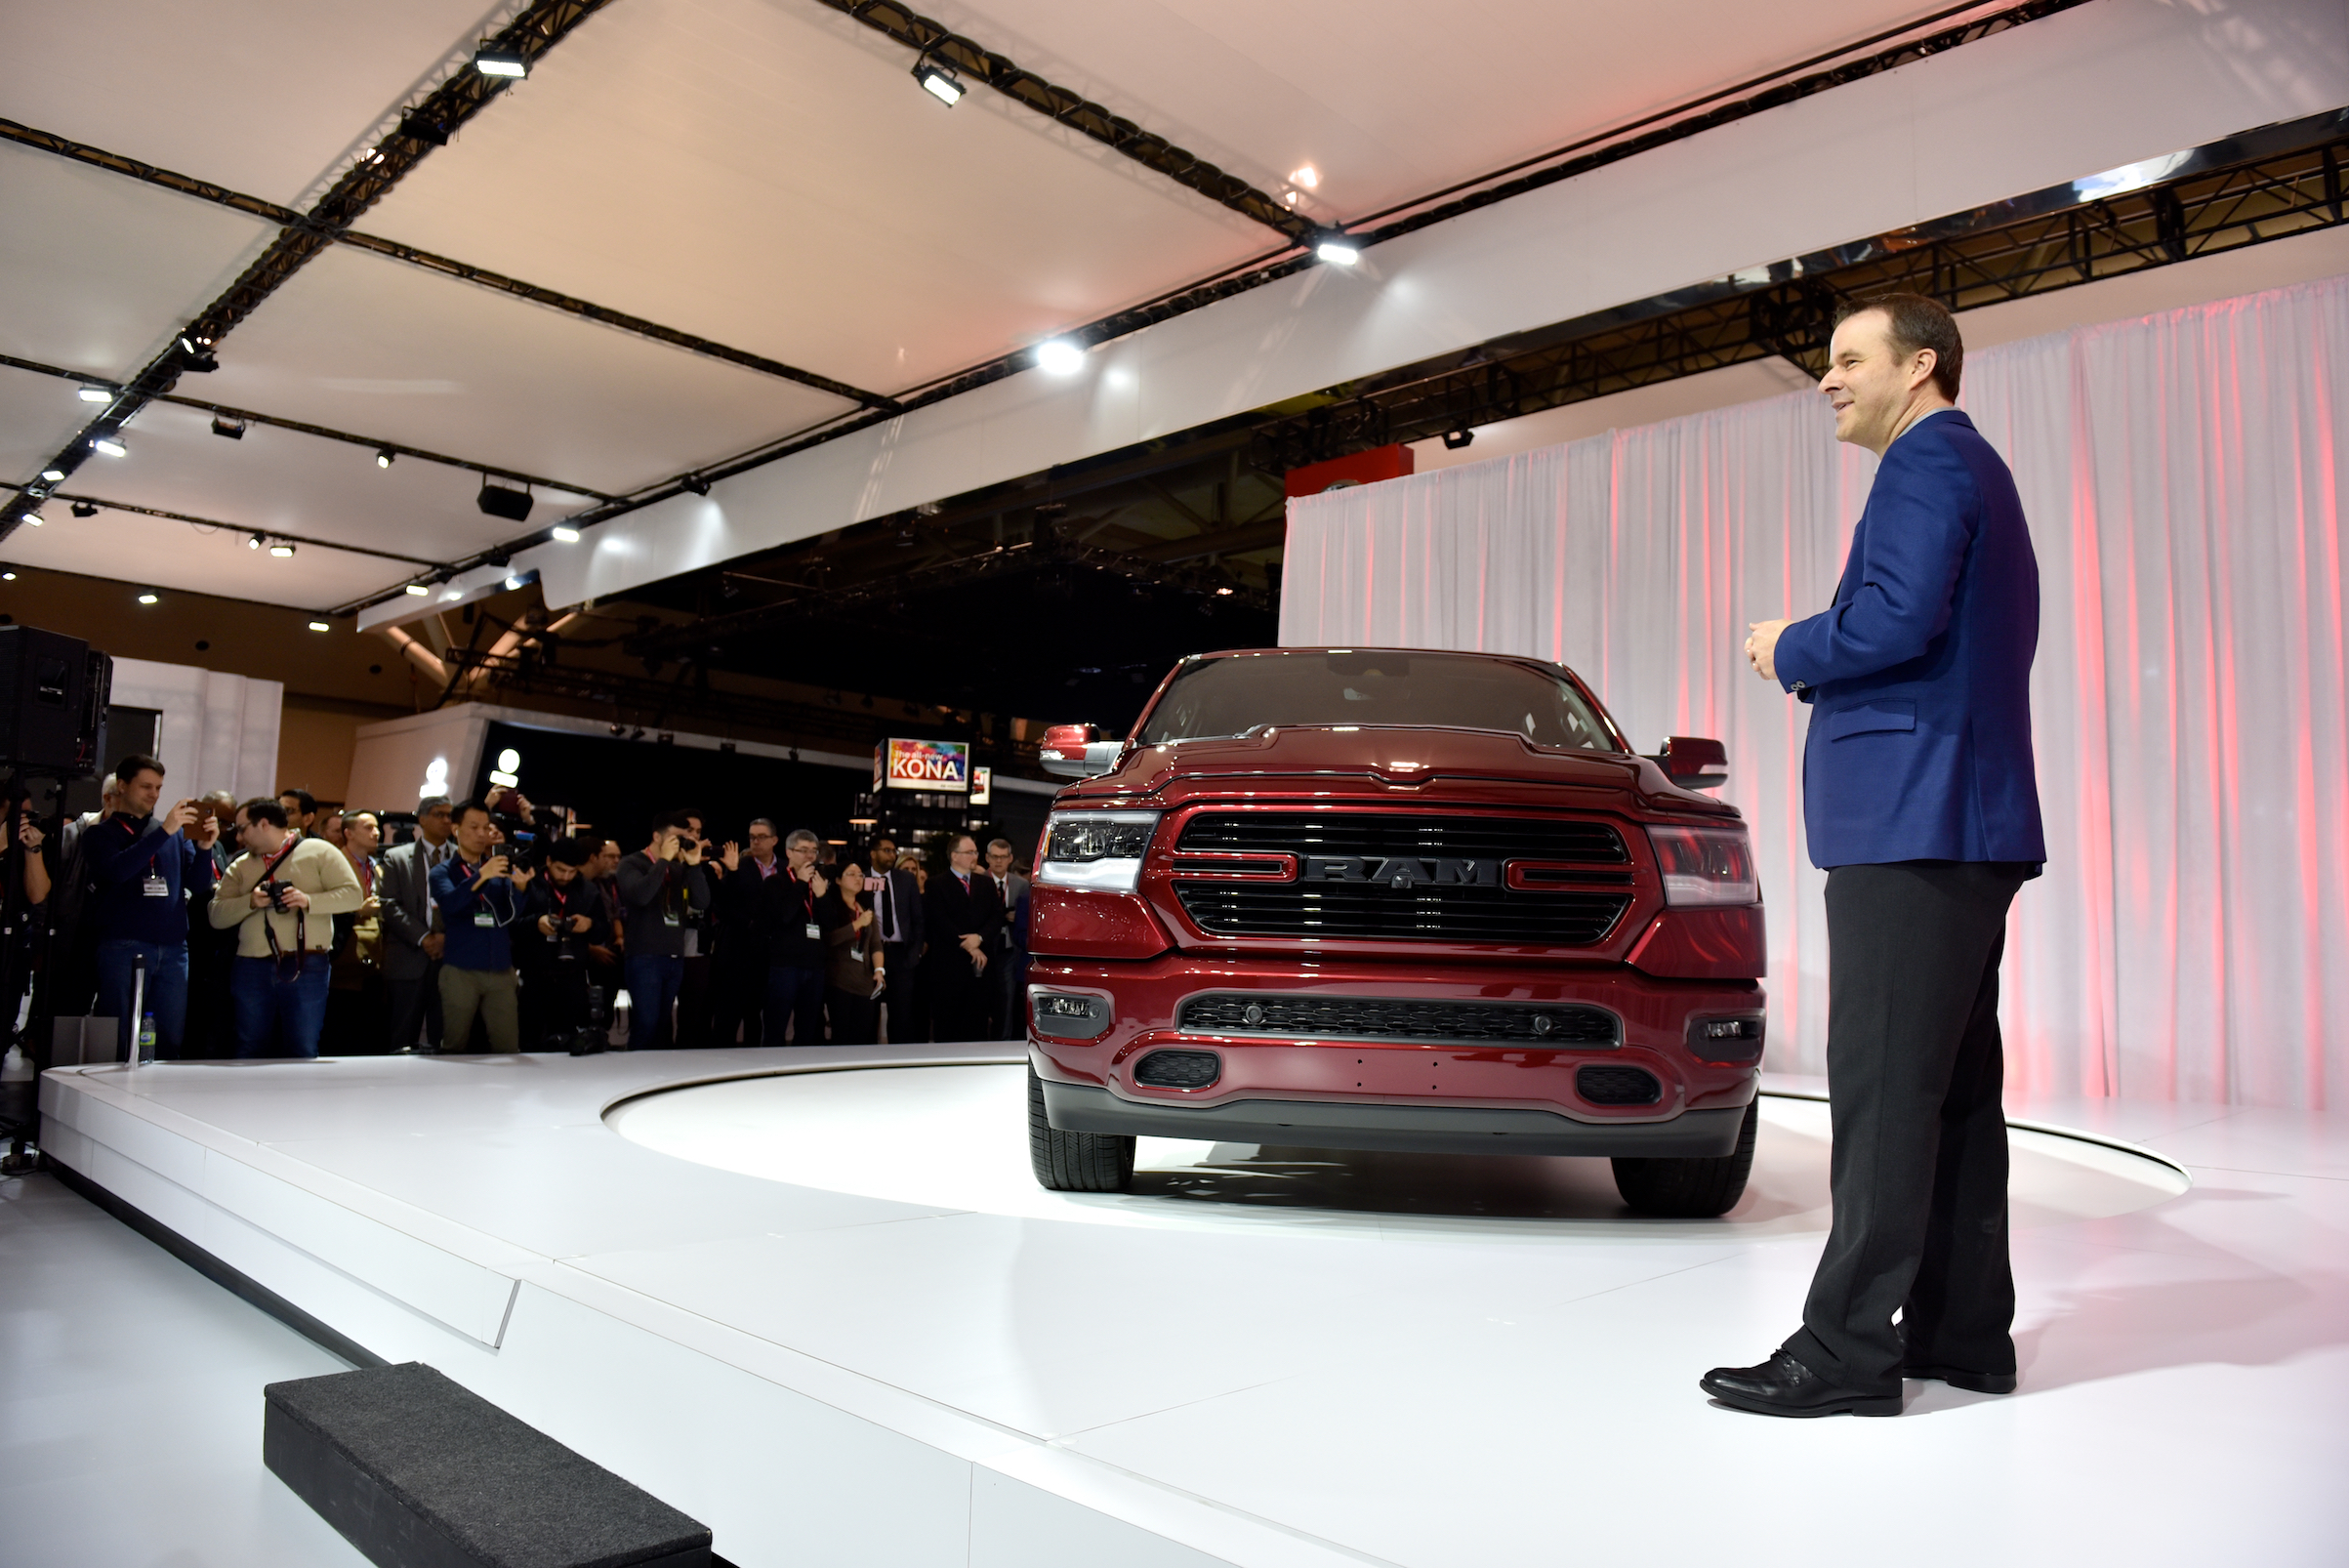 Ram Truck unveiled the all-new and exclusive-to-Canada 2019 Ram 1500 Sport during media day of the Canadian International AutoShow in Toronto.